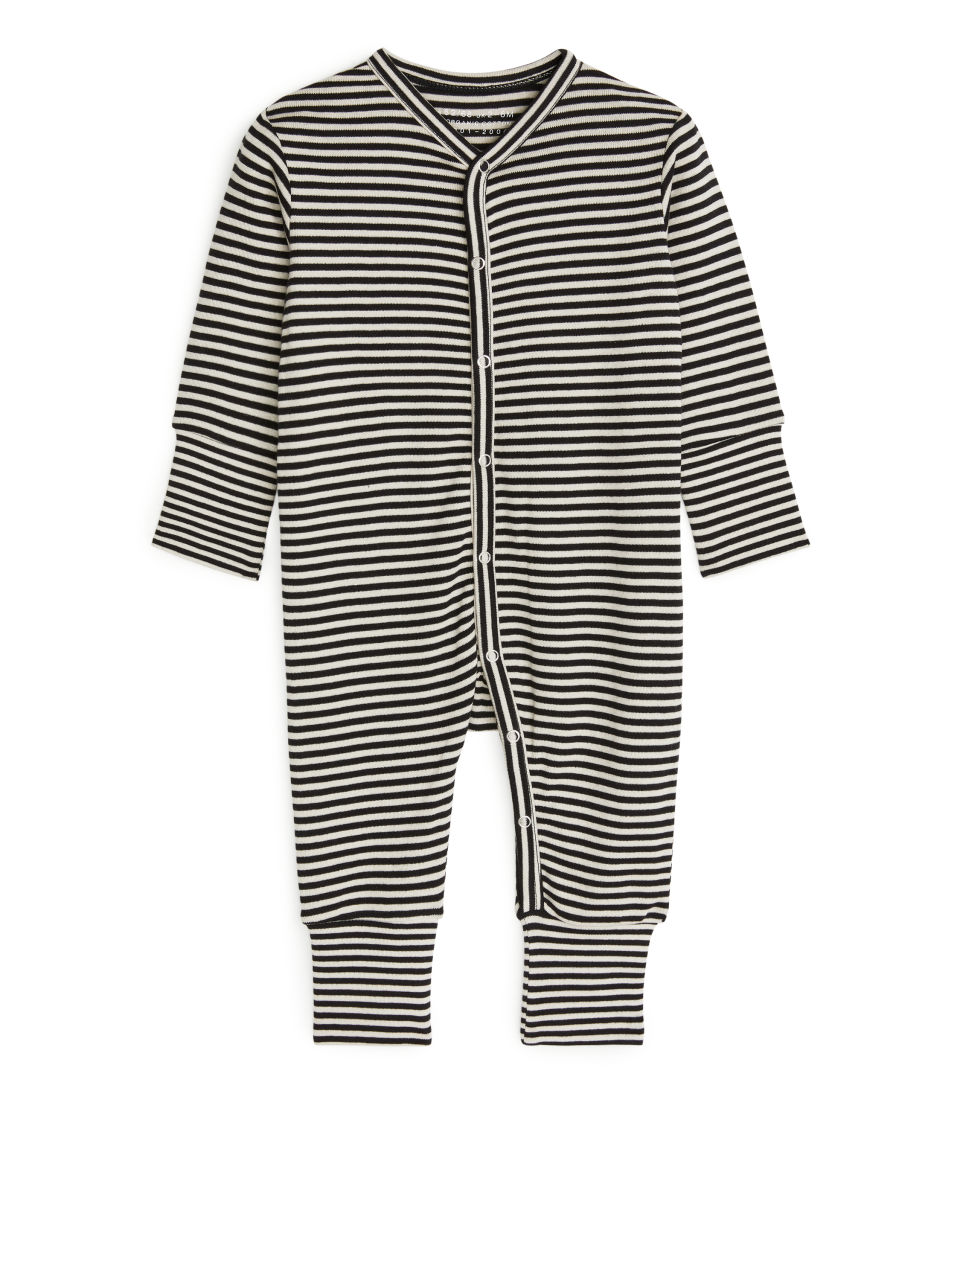 Black striped sleepsuit